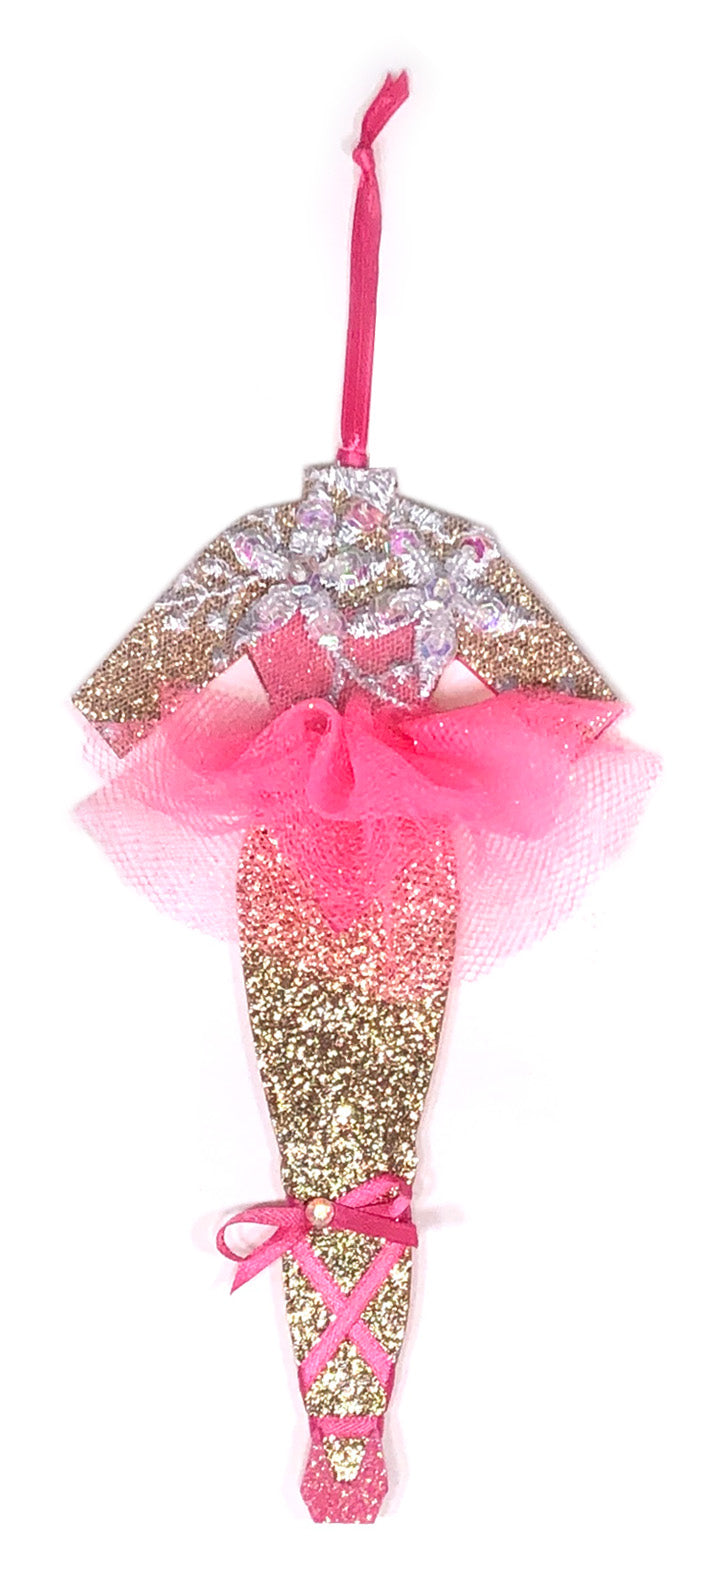 Sugar Plum Pink Ballerina Christmas Ornament by Heather French Henry